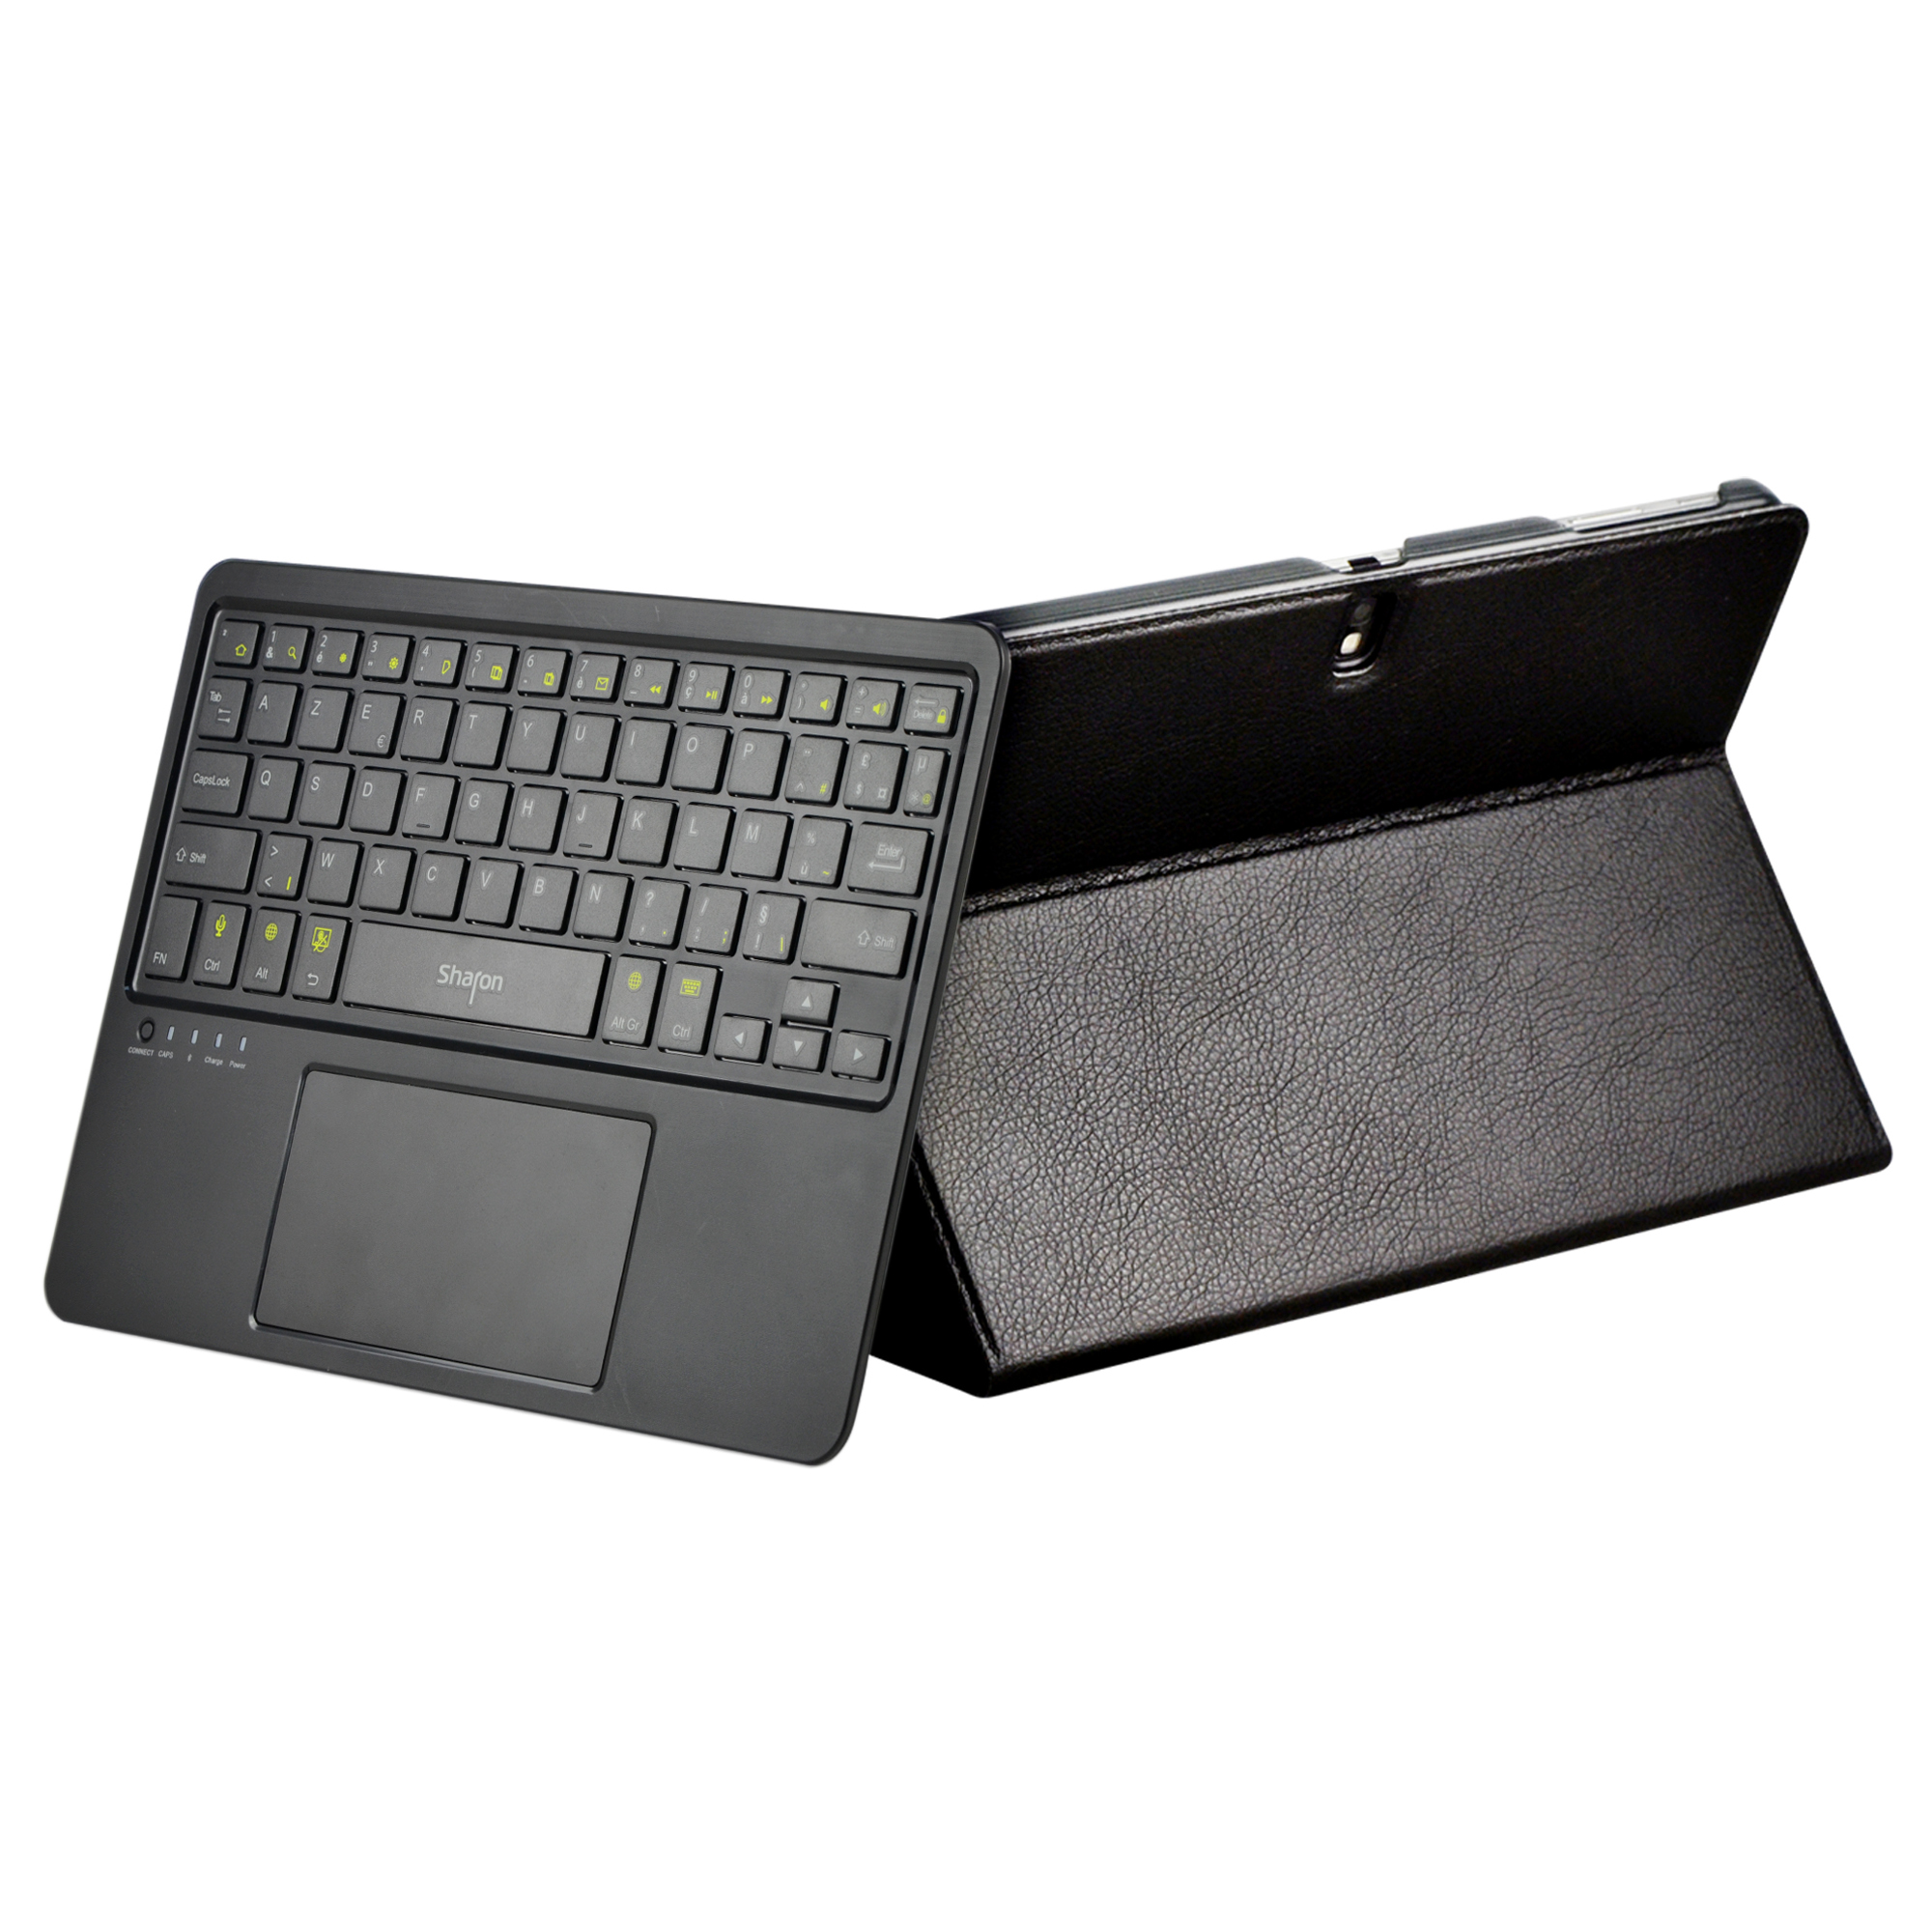 coque samsung galaxy note 10.1 edition 2014 clavier